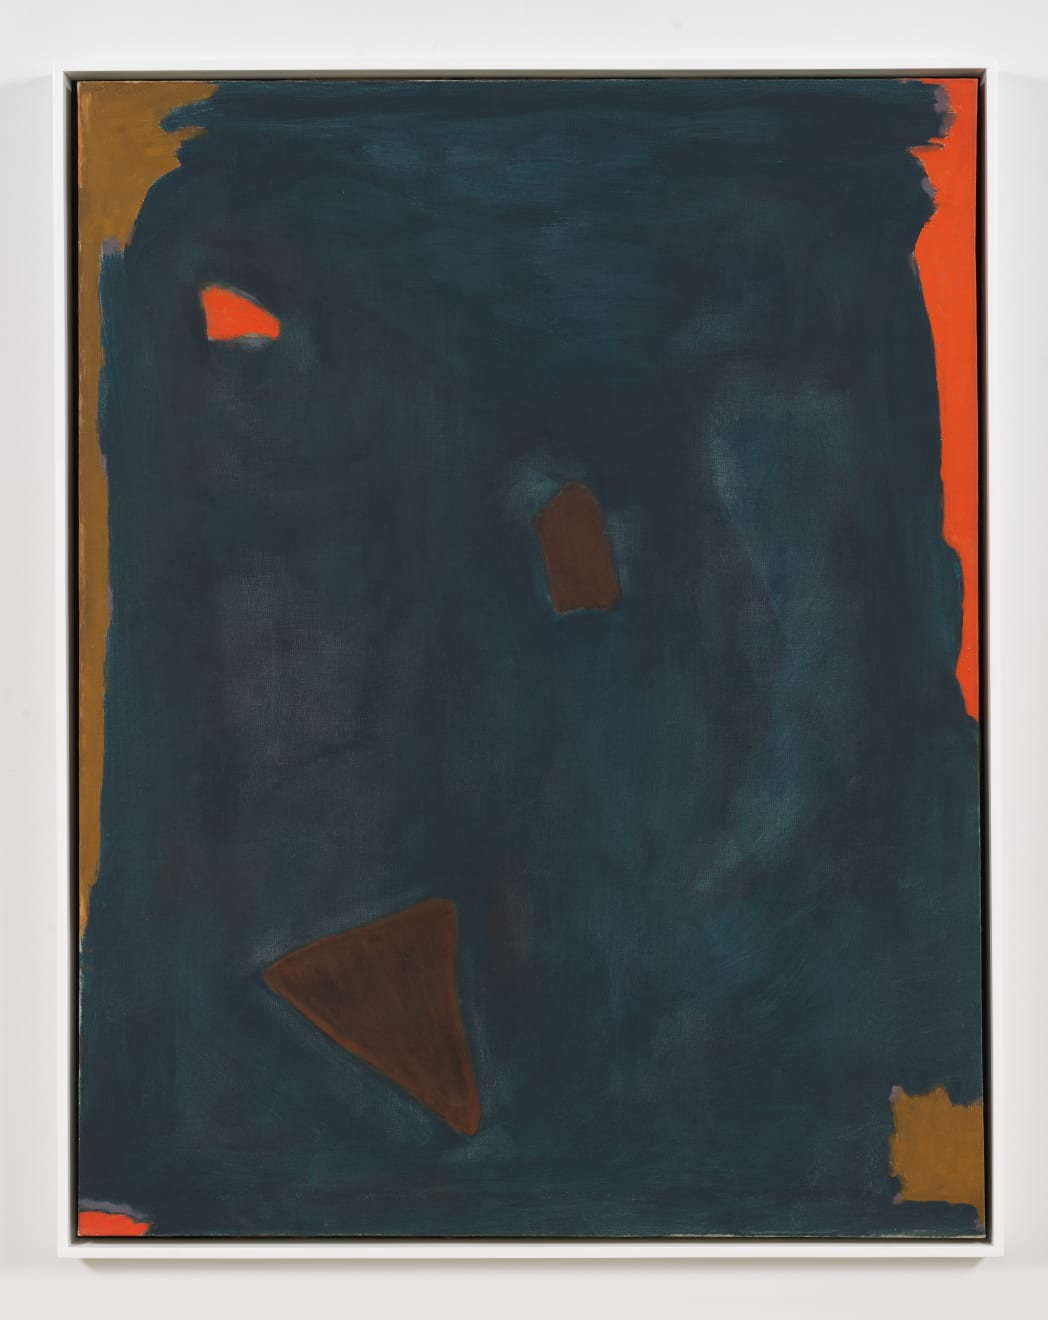 Betty Parsons Night Forms, 1960 Oil on canvas 52h x 40.50w in (132.08h x 102.87w cm)